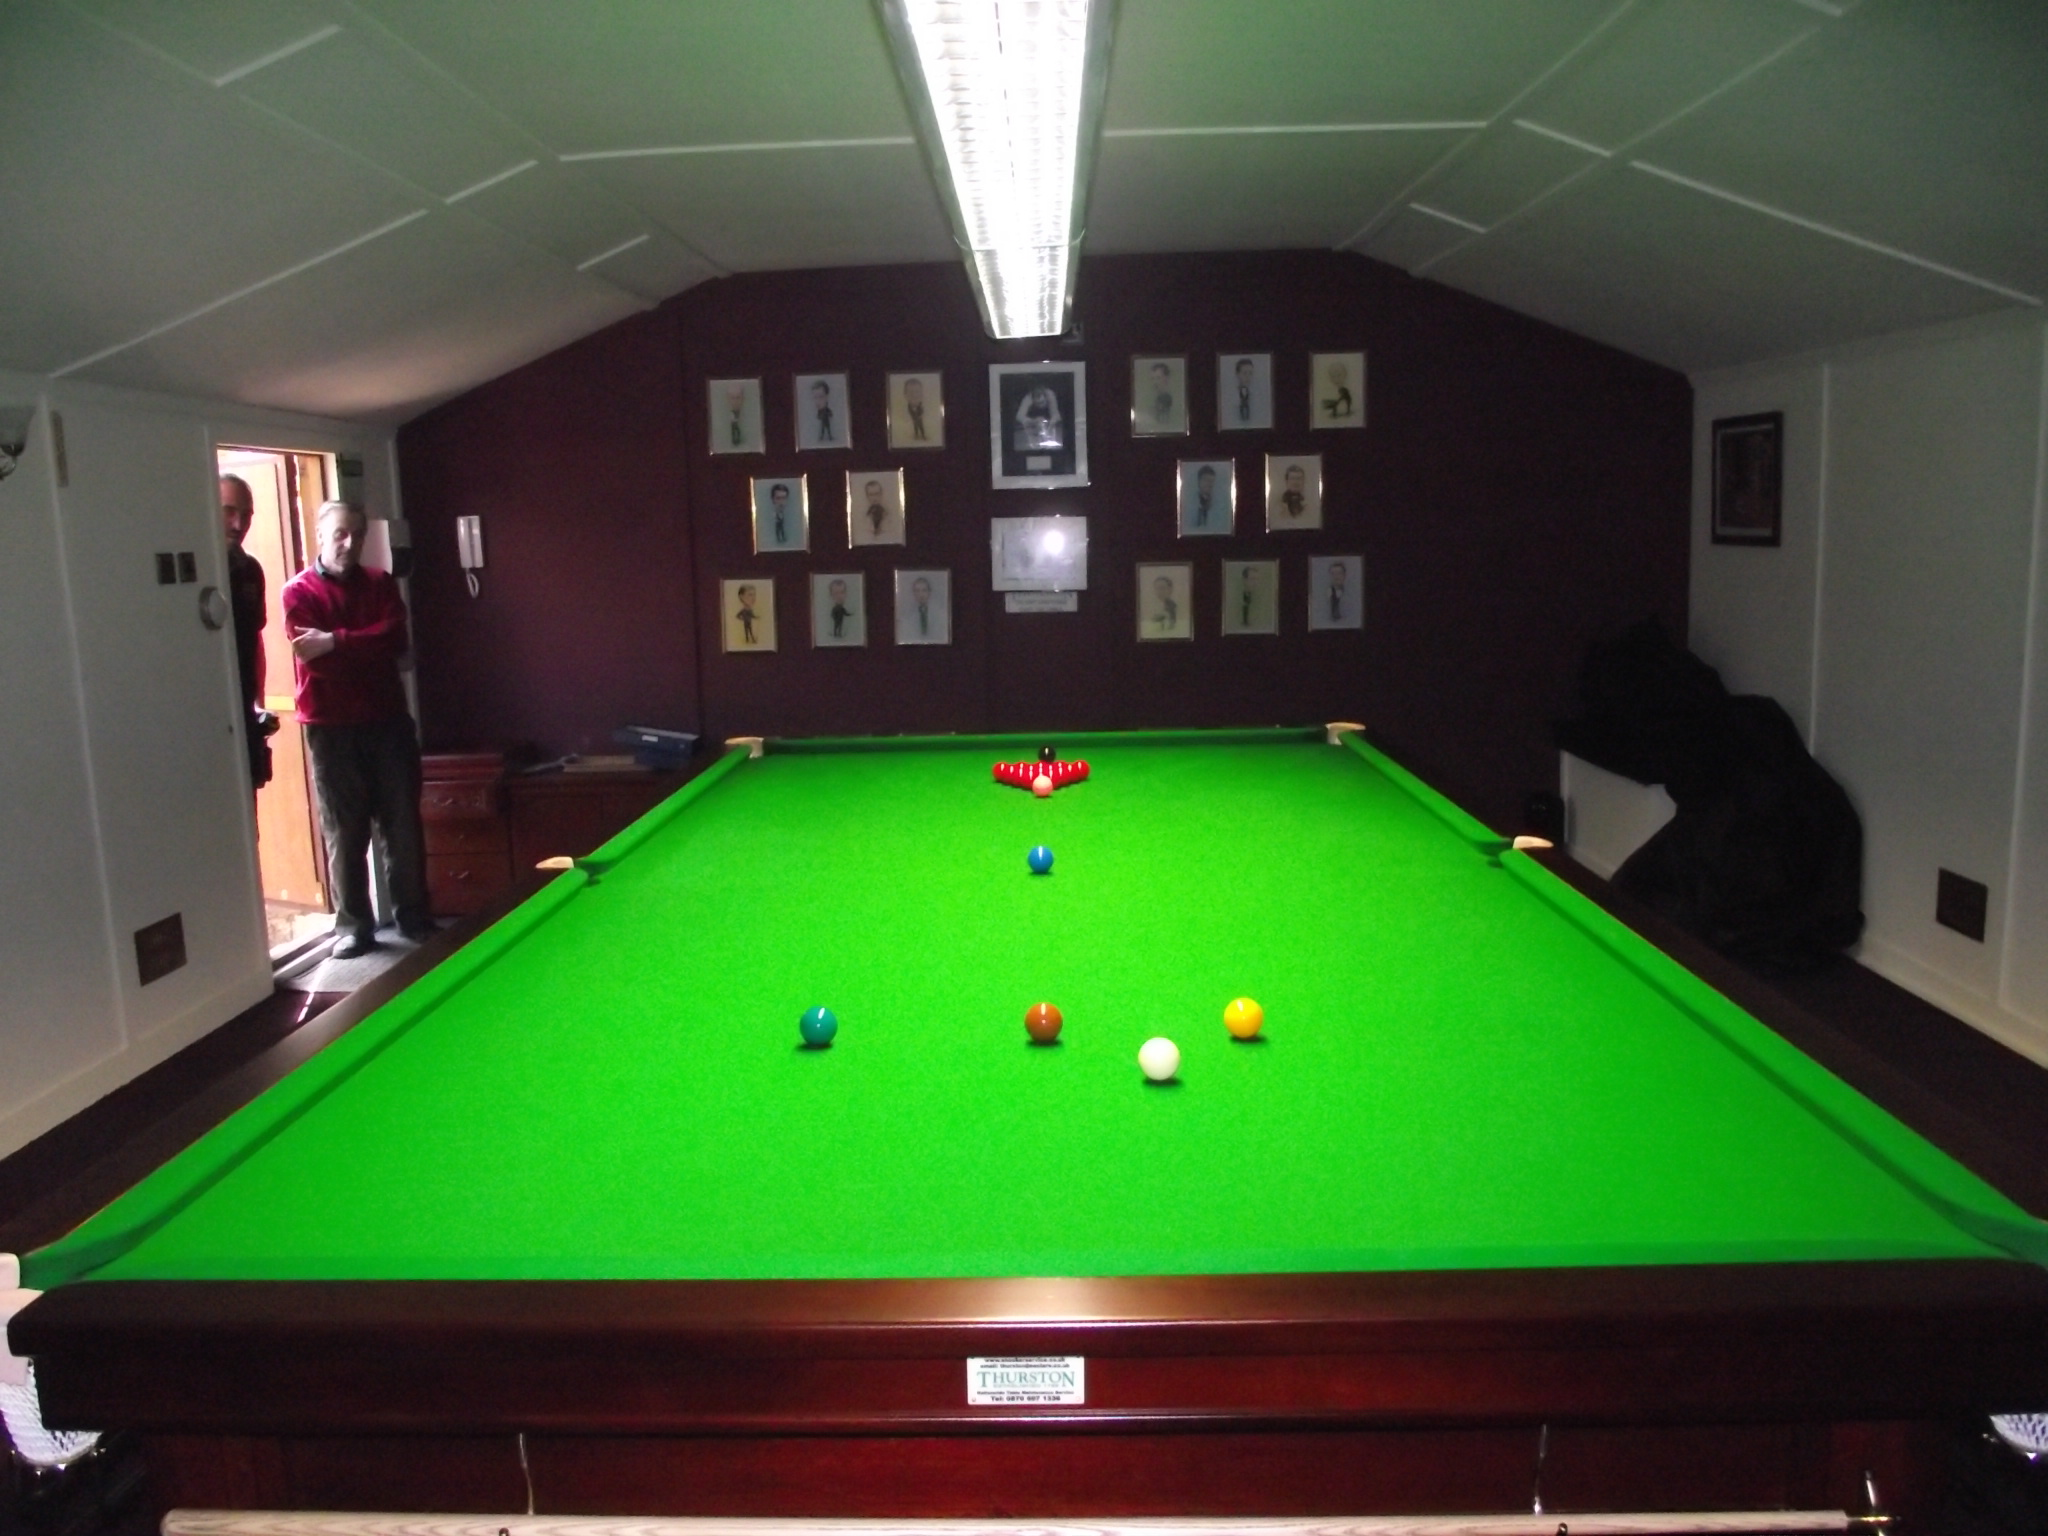 Snooker room pool room made to measure garden buildings for Garden pool room